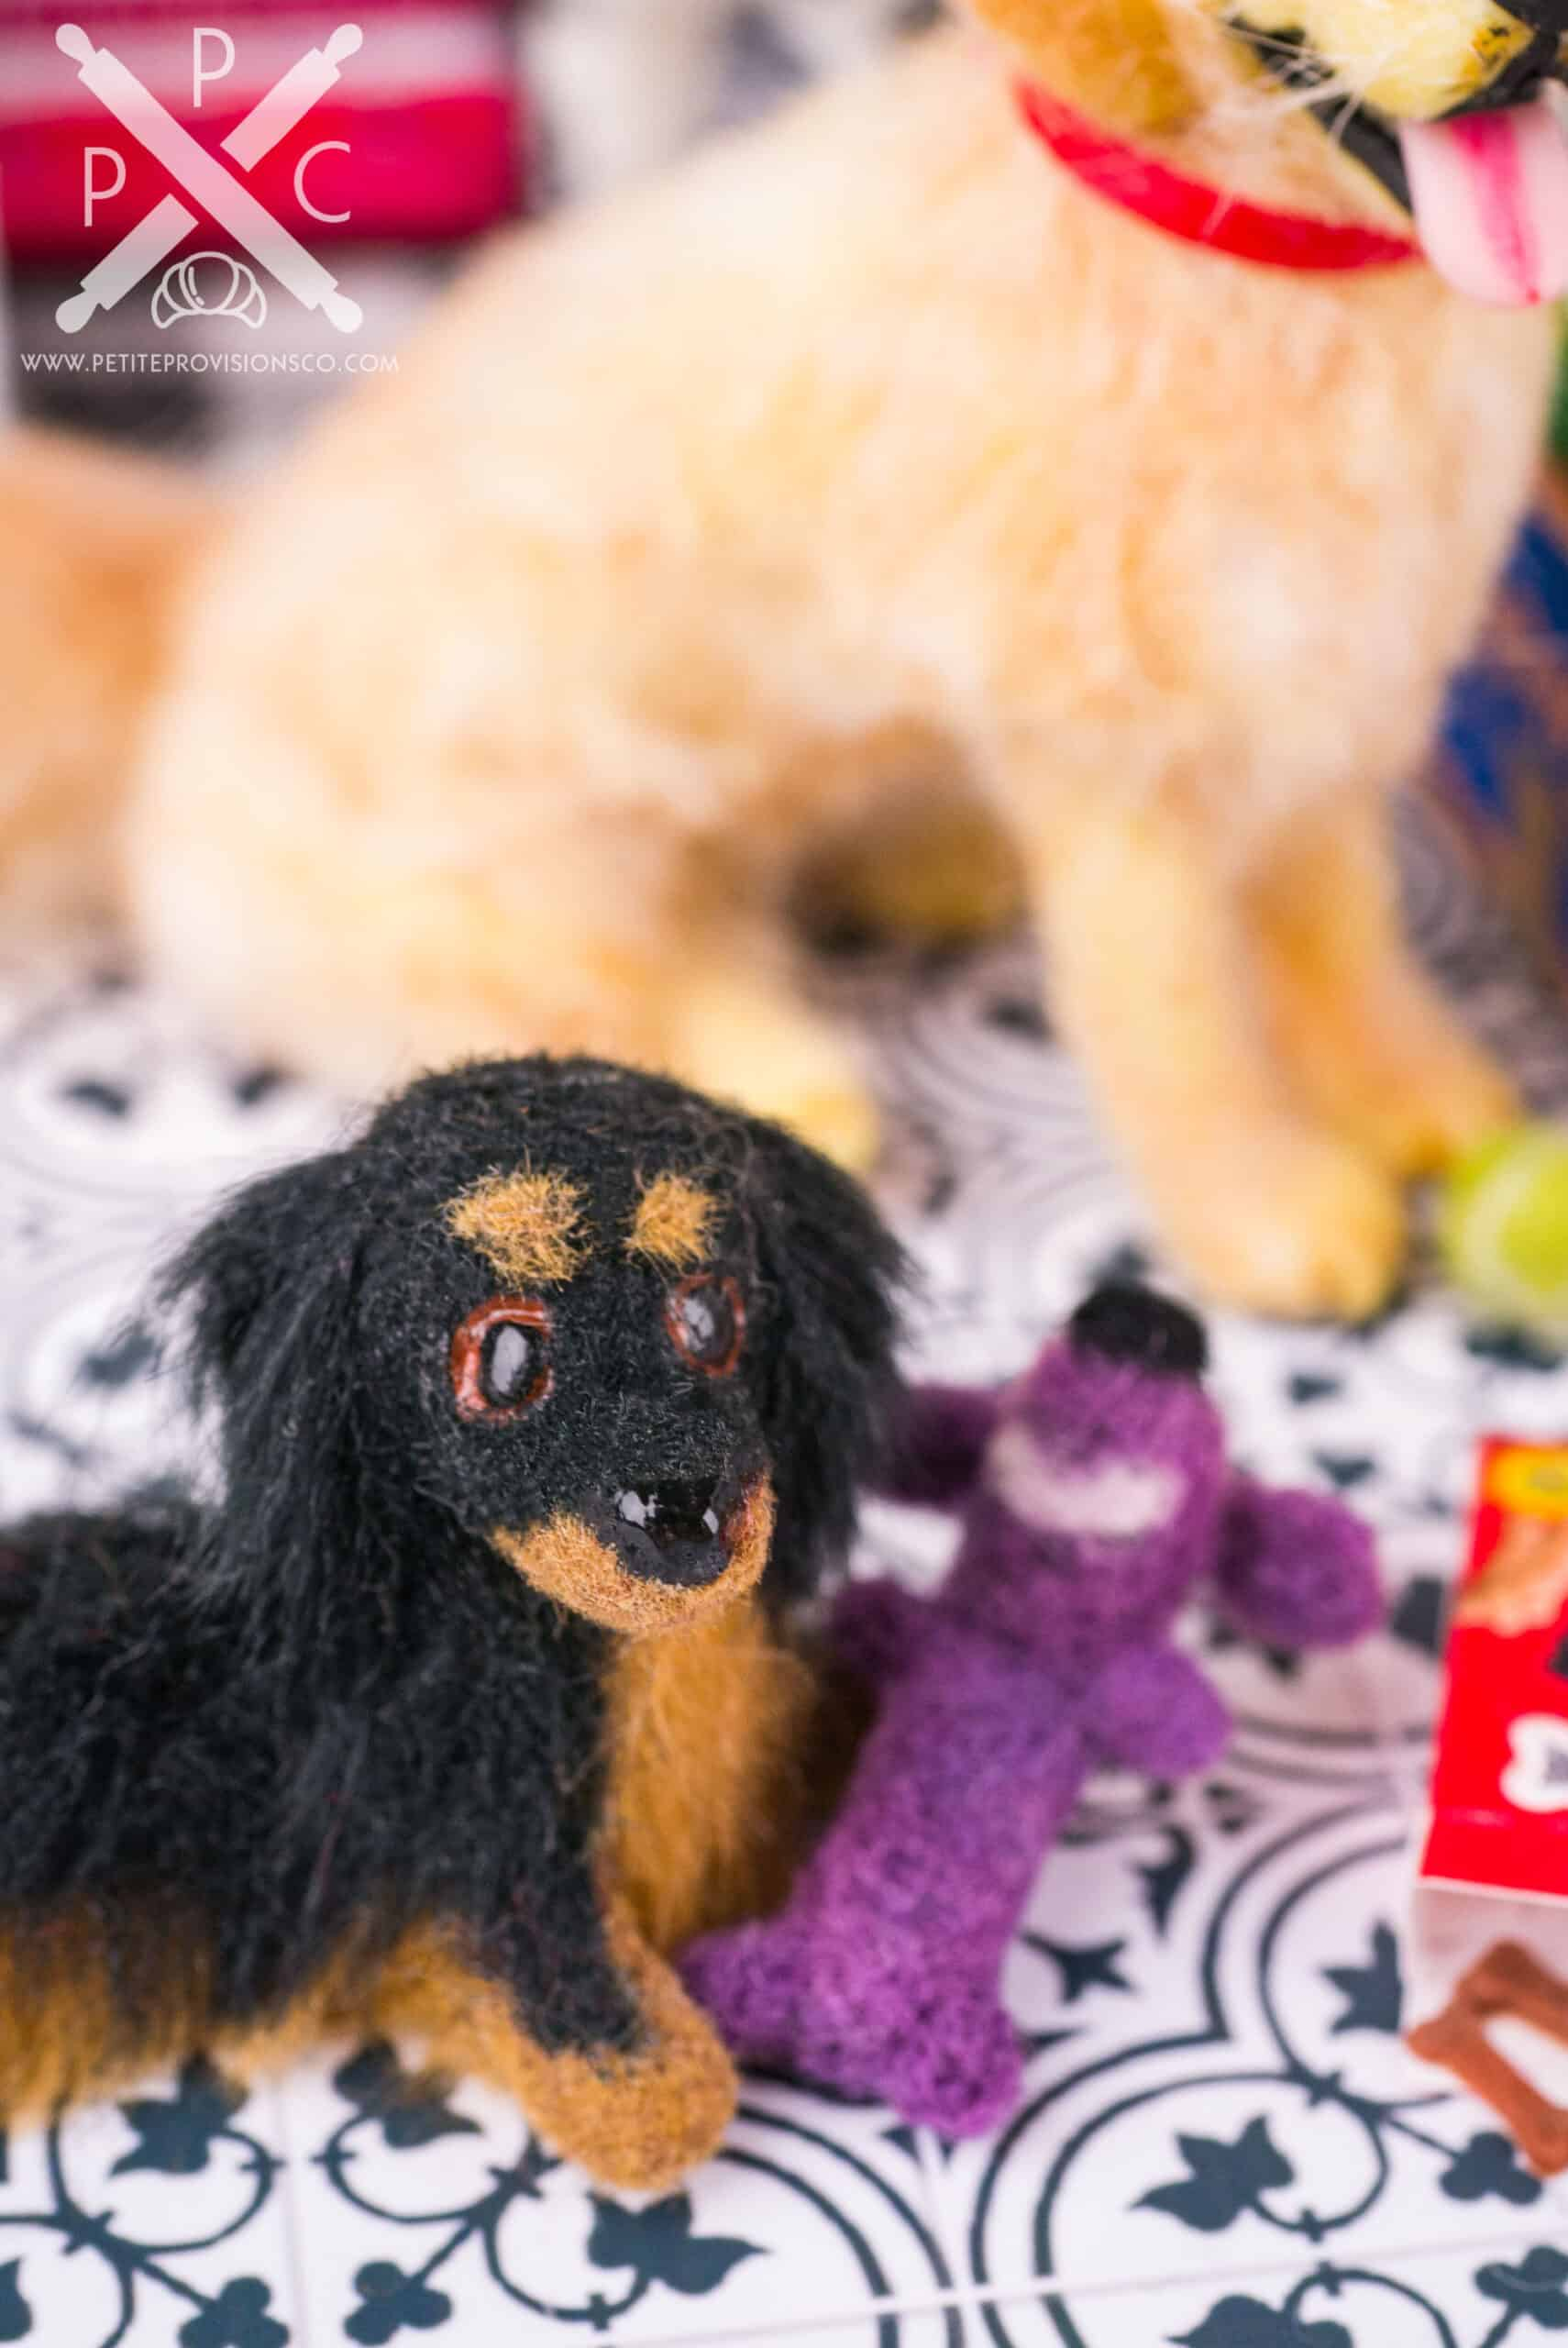 One inch scale needle felted dog toy in a dollhouse miniature scene by Erika Pitera, The Petite Provisions Co.